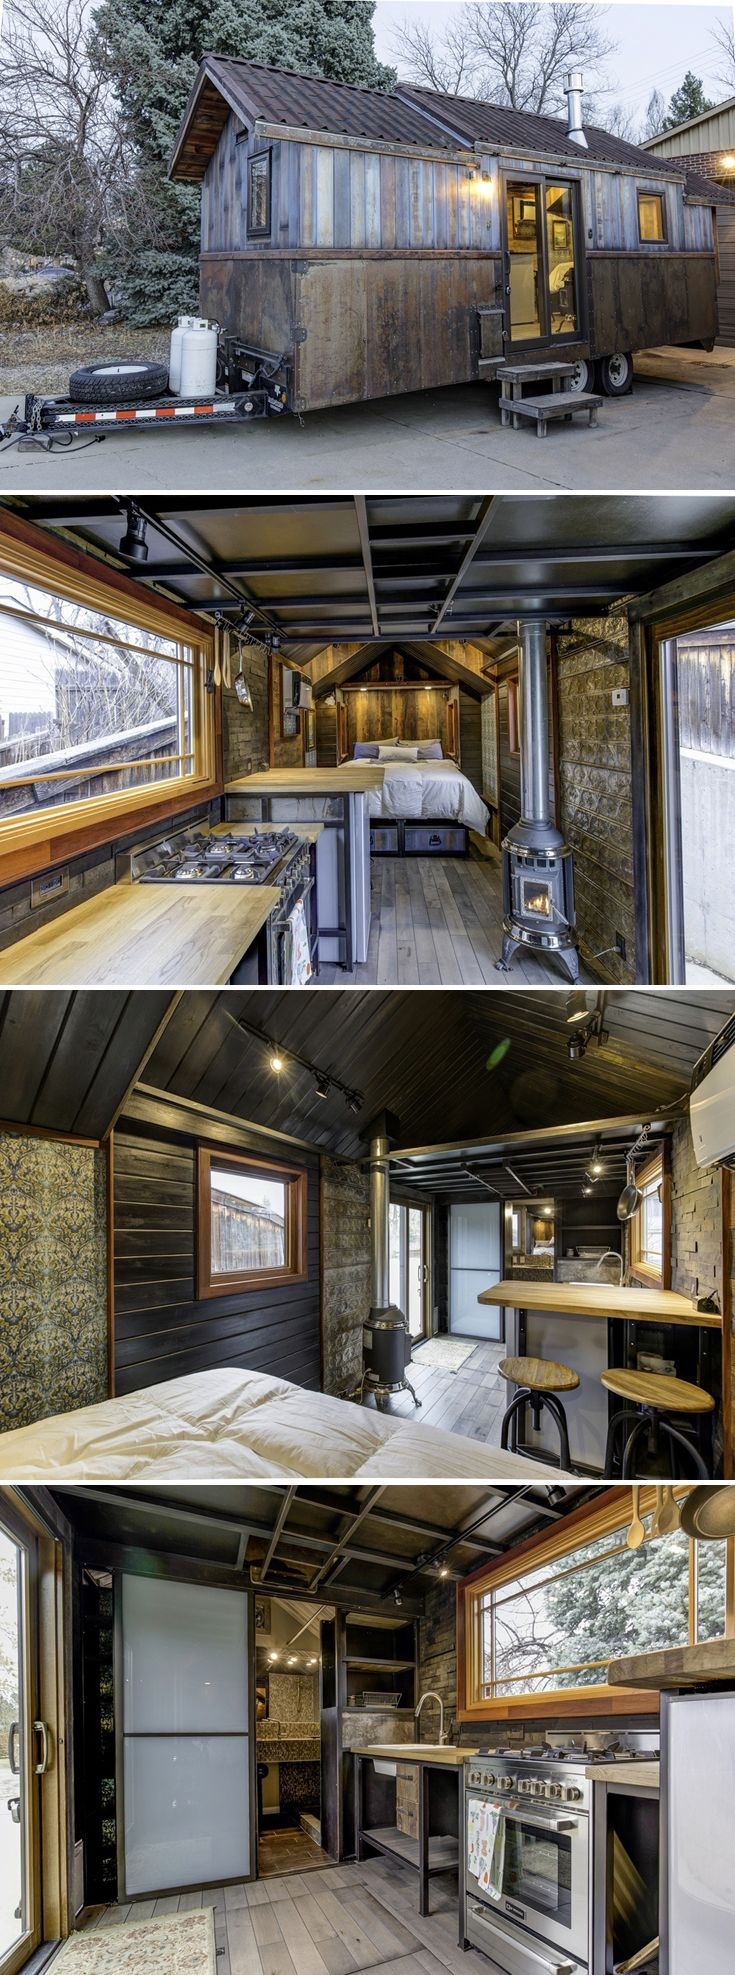 smart cabin by lil lodges is a 400 square foot dream vacation home earth and sky palace